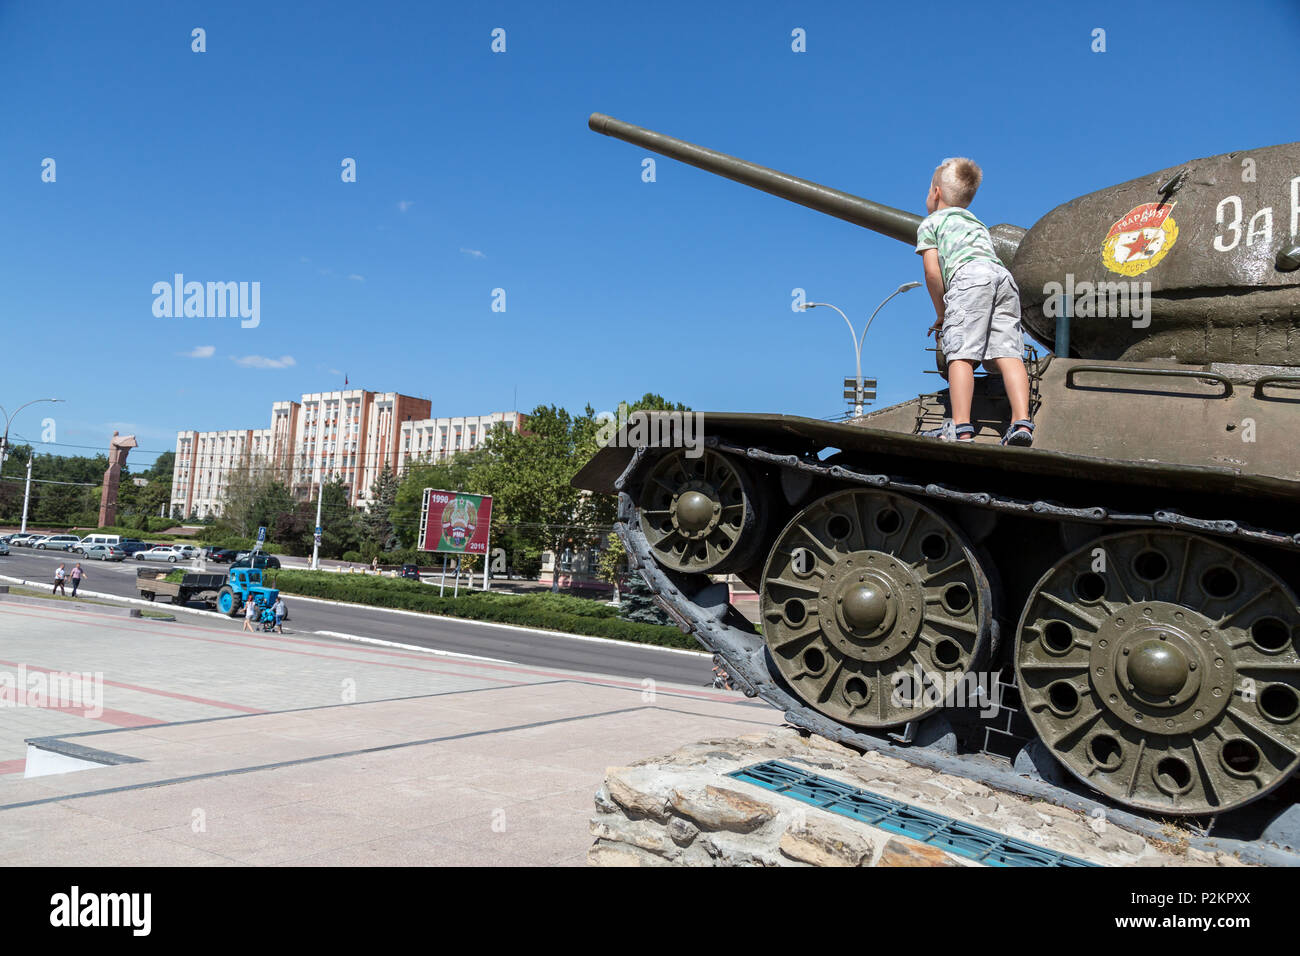 25.08.2016, Tiraspol, Transnistria, Moldova - The famous tank monument in the city center (street of the 25th October), a Russian T 34 from the Second - Stock Image